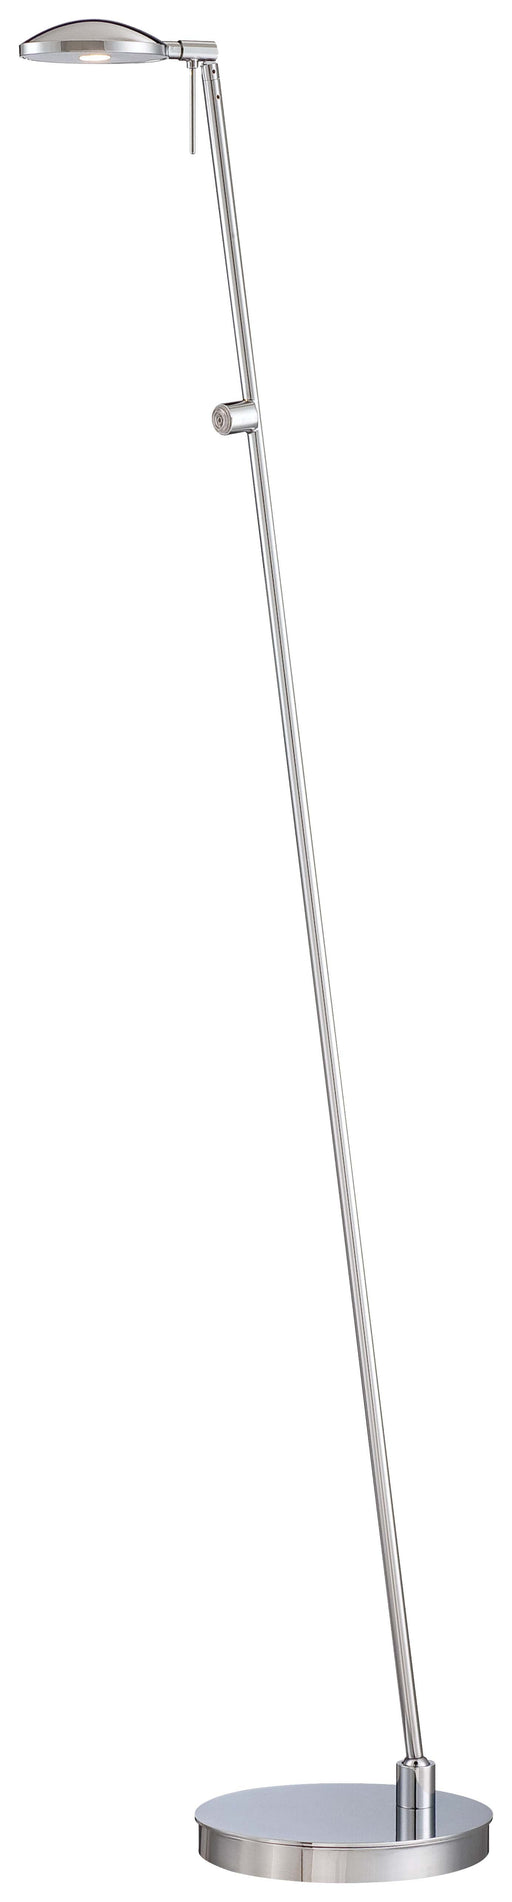 George's Reading Room™ - 1 Light LED Pharmacy Floor Lamp